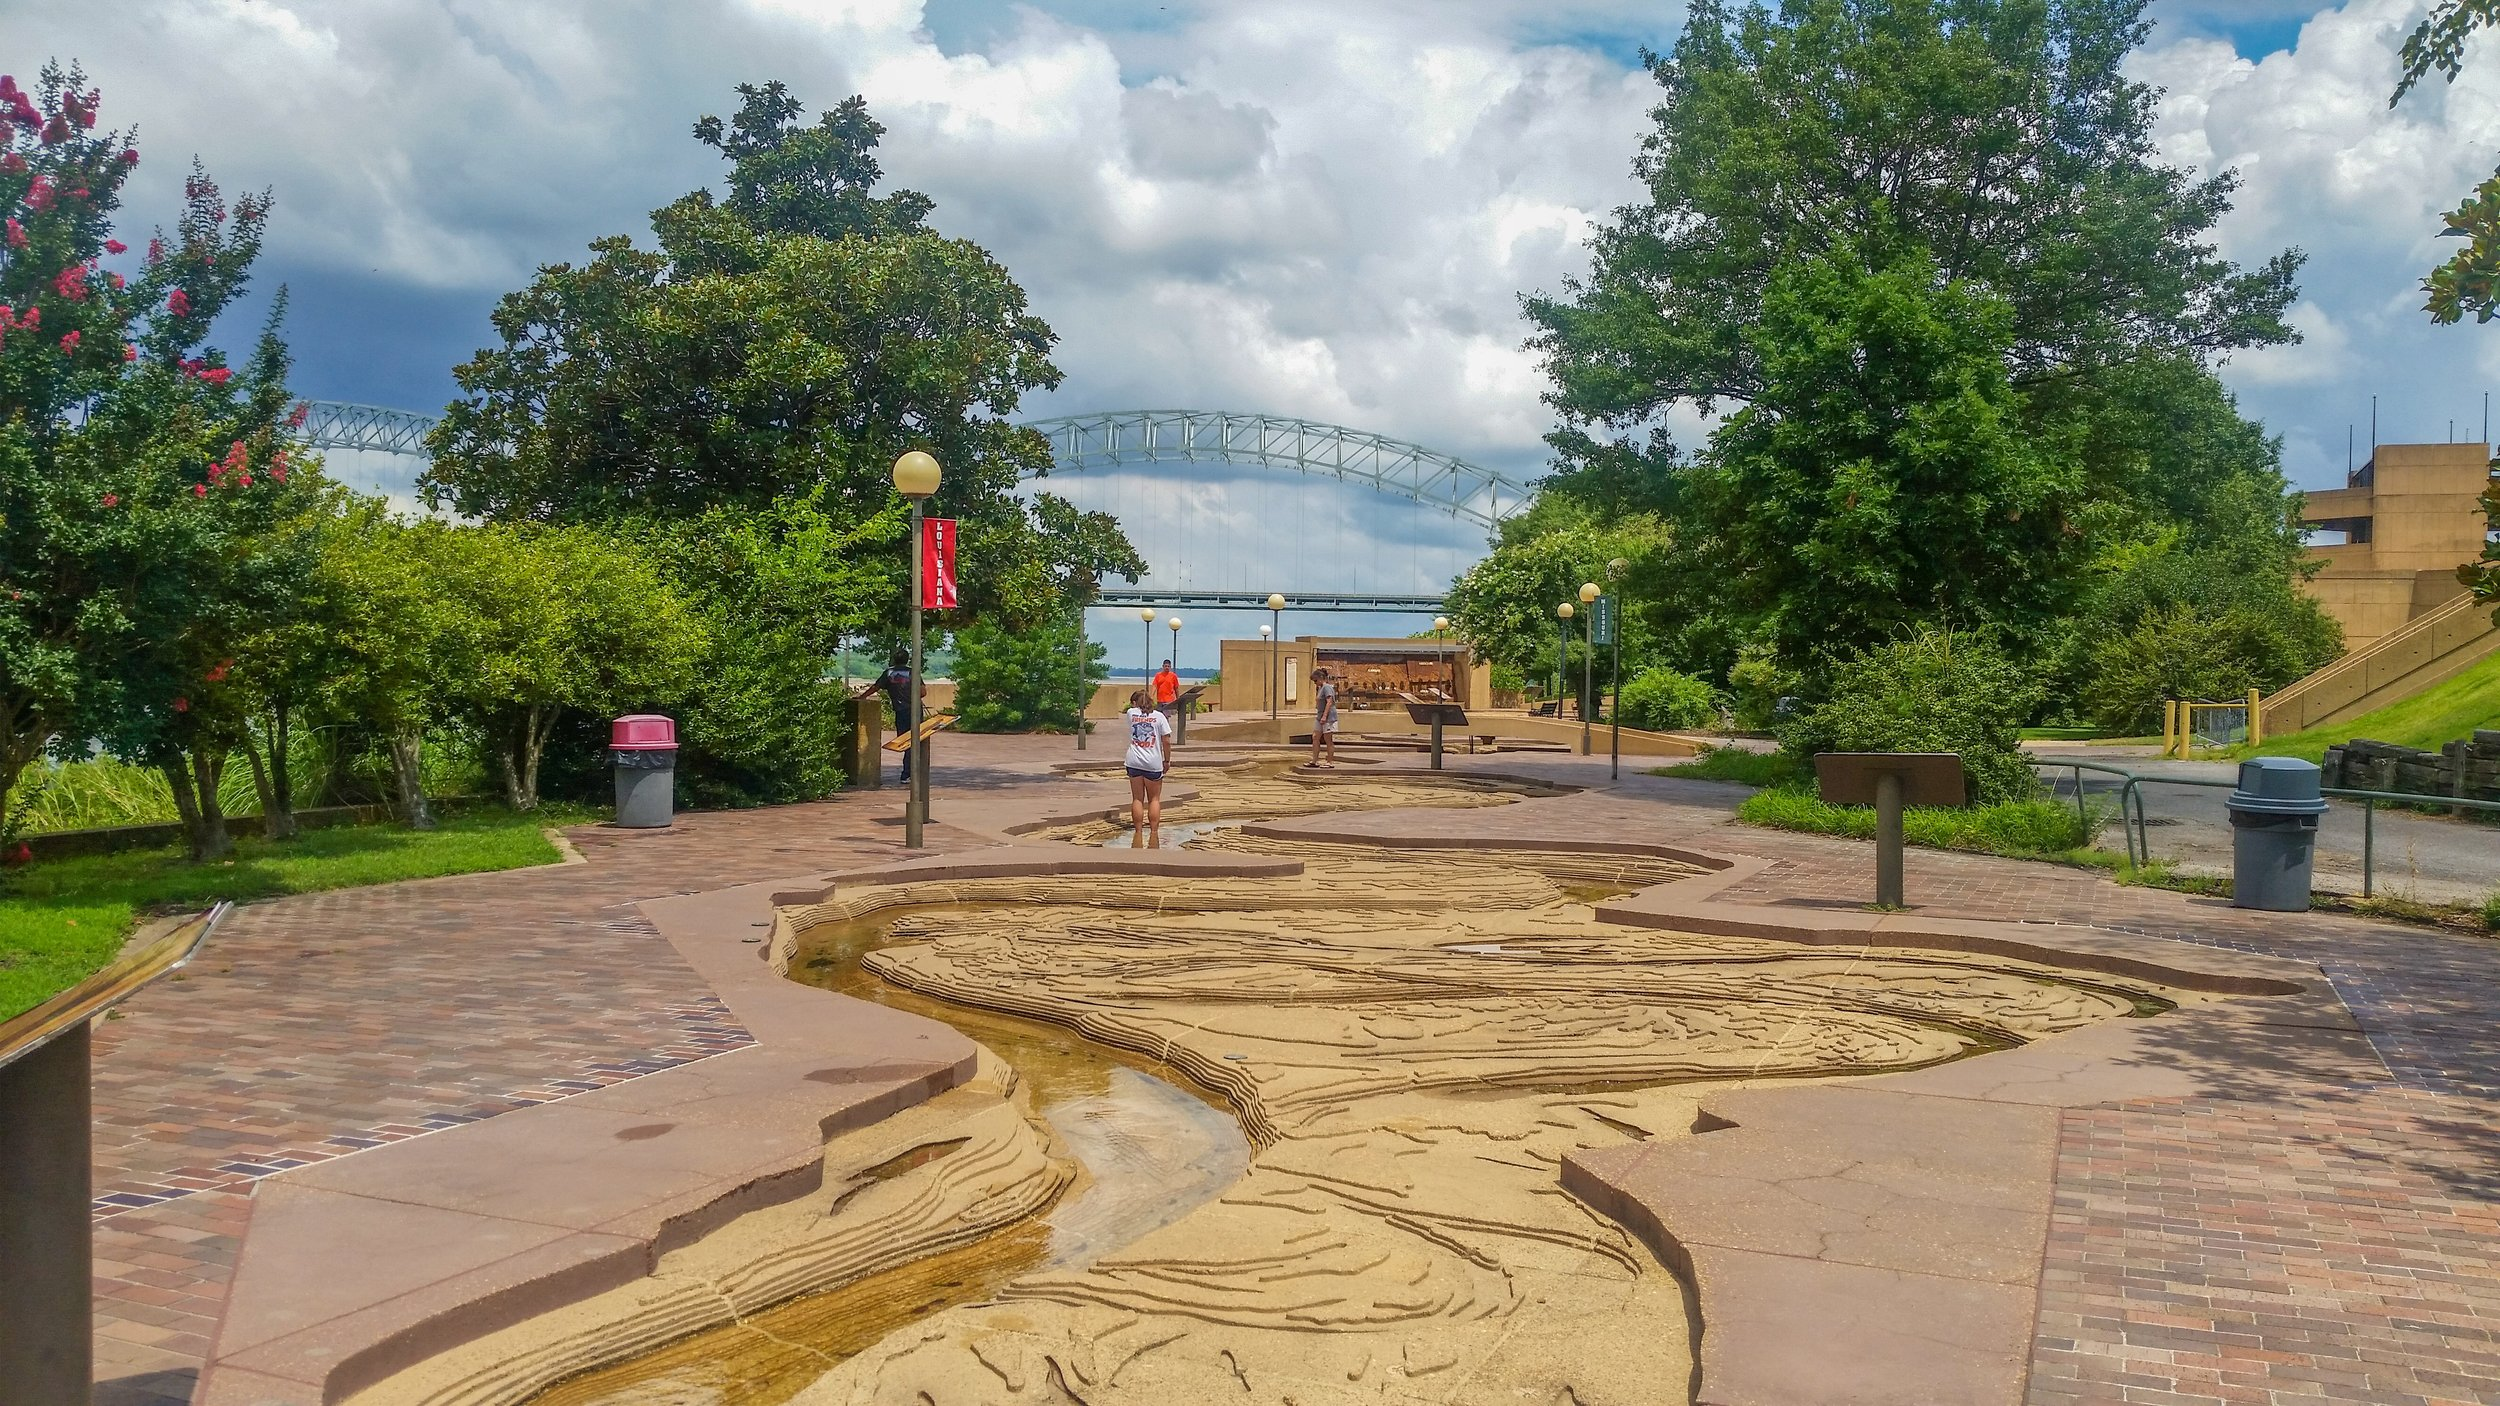 Mud Island Park's scale-model of the Mississippi River